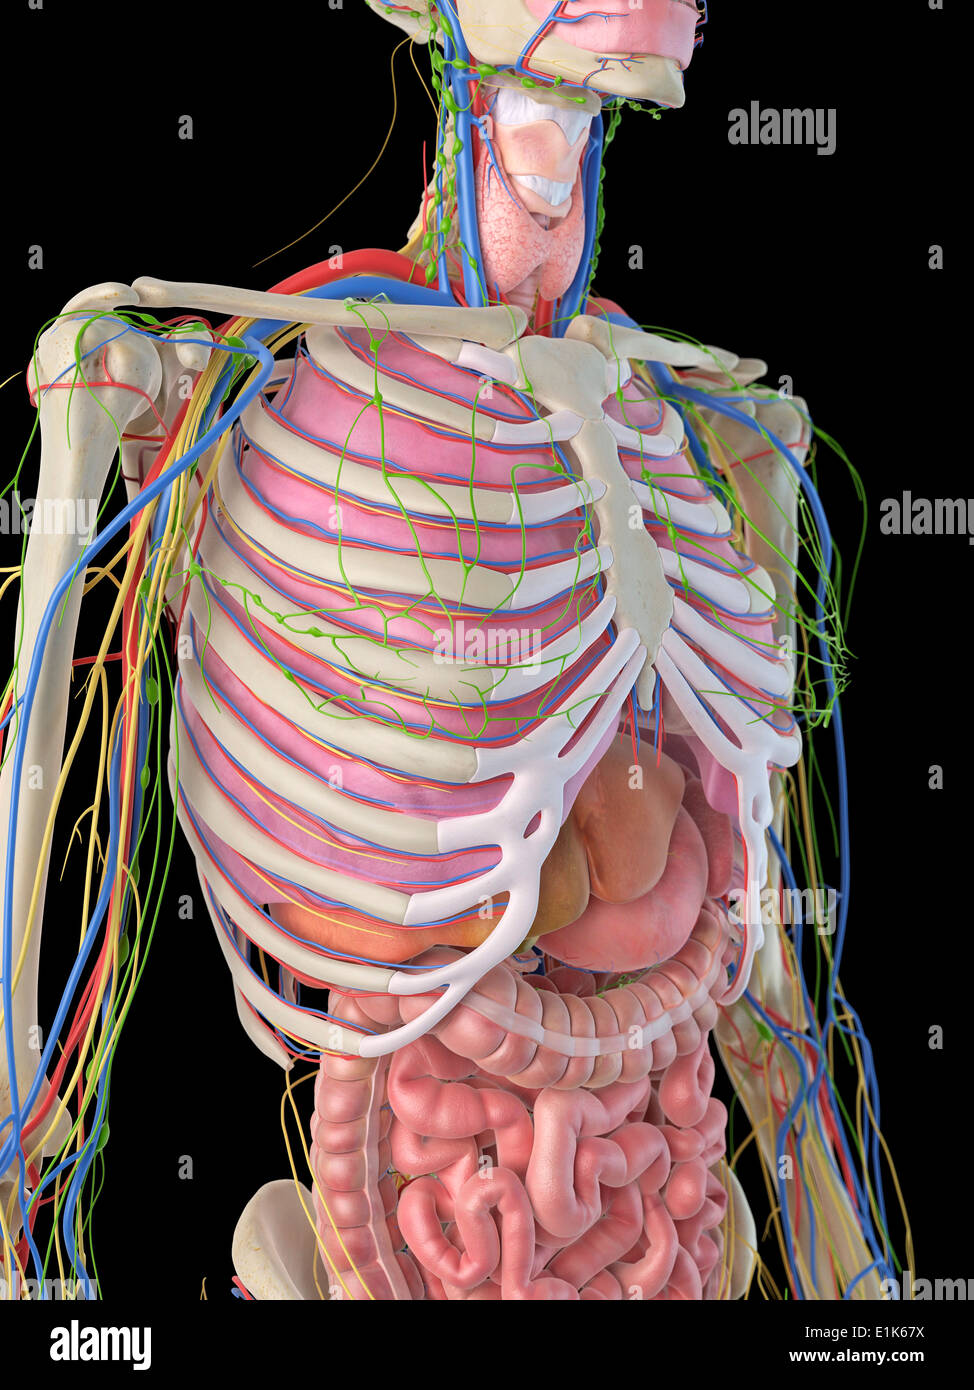 Diagram Of Organs In Rib Cage - DIY Enthusiasts Wiring Diagrams •